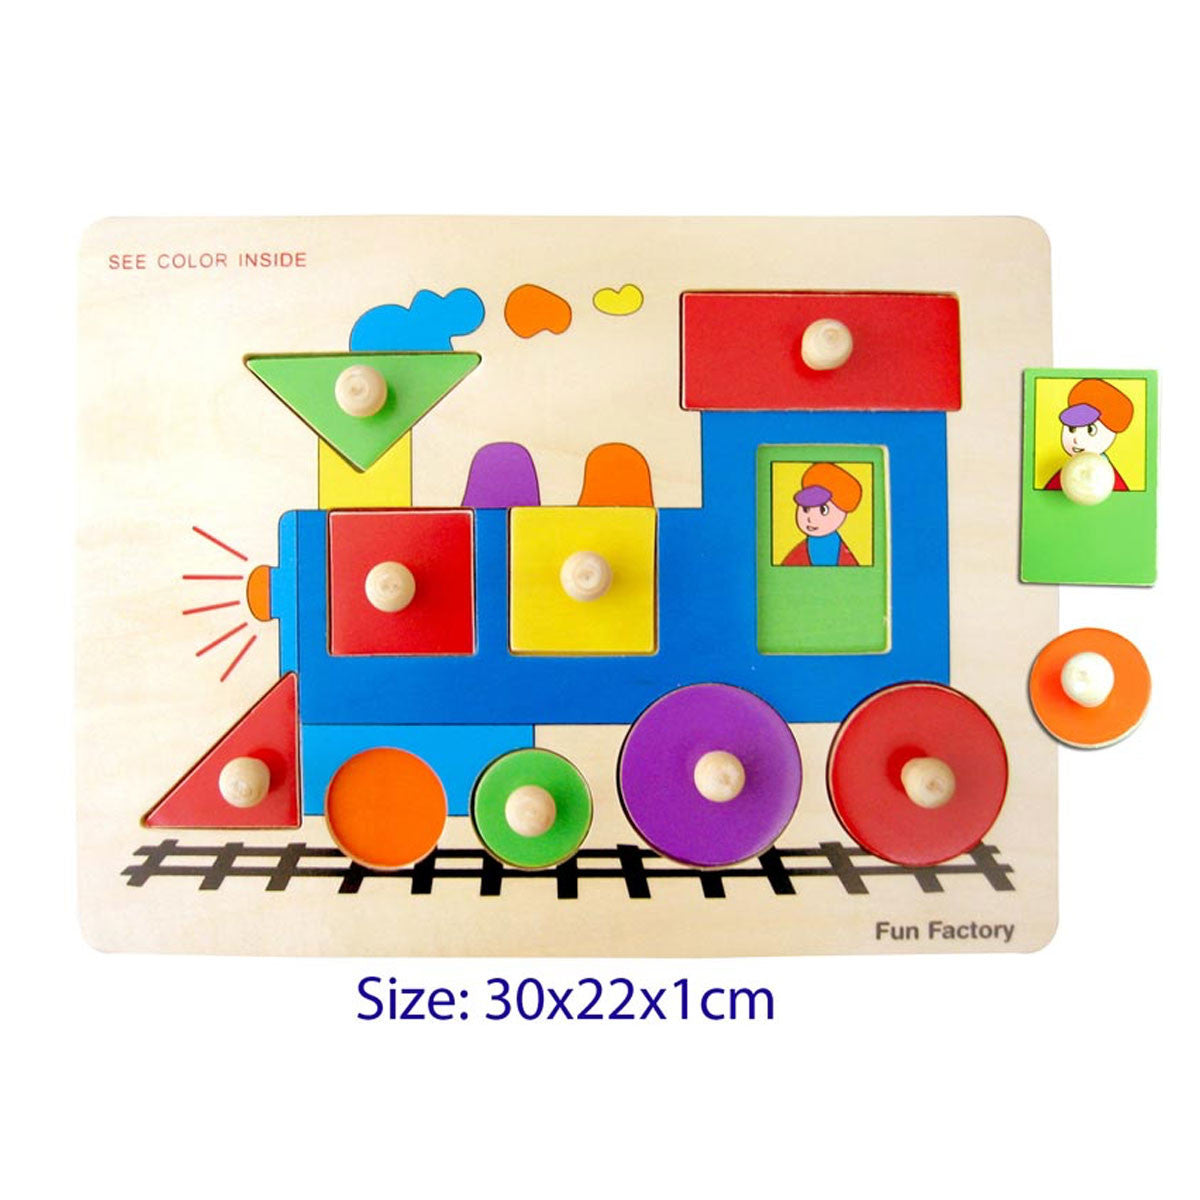 Wooden Baby and Toddler Puzzle - with Handles Fun Factory Puzzles at Little Earth Nest Eco Shop